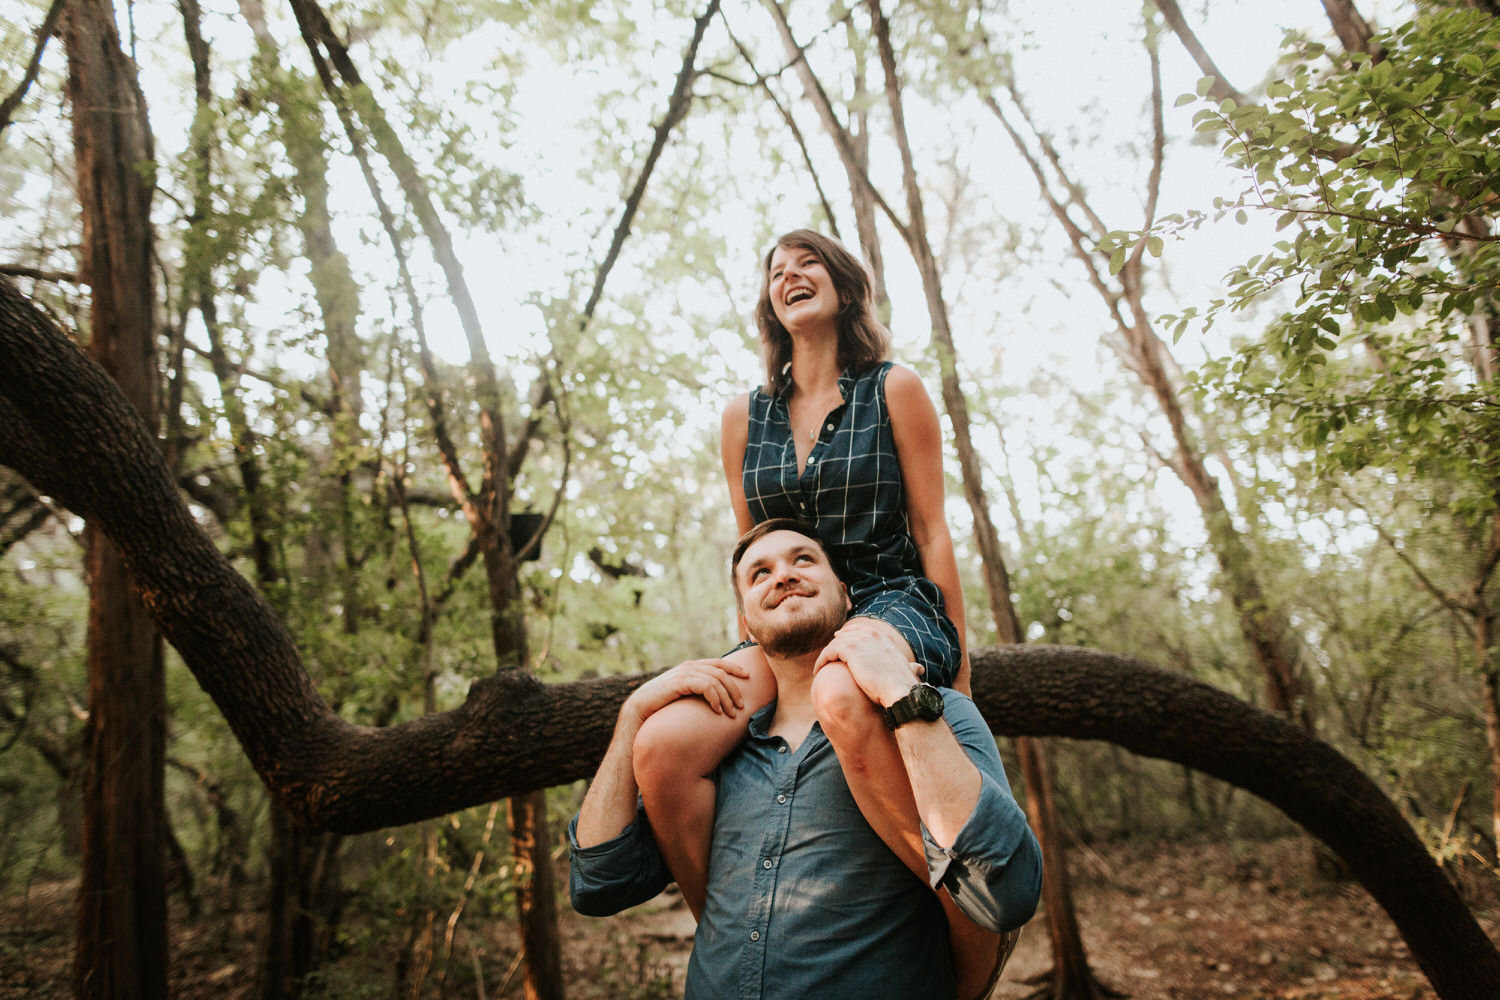 Laughing woman on man's shoulders